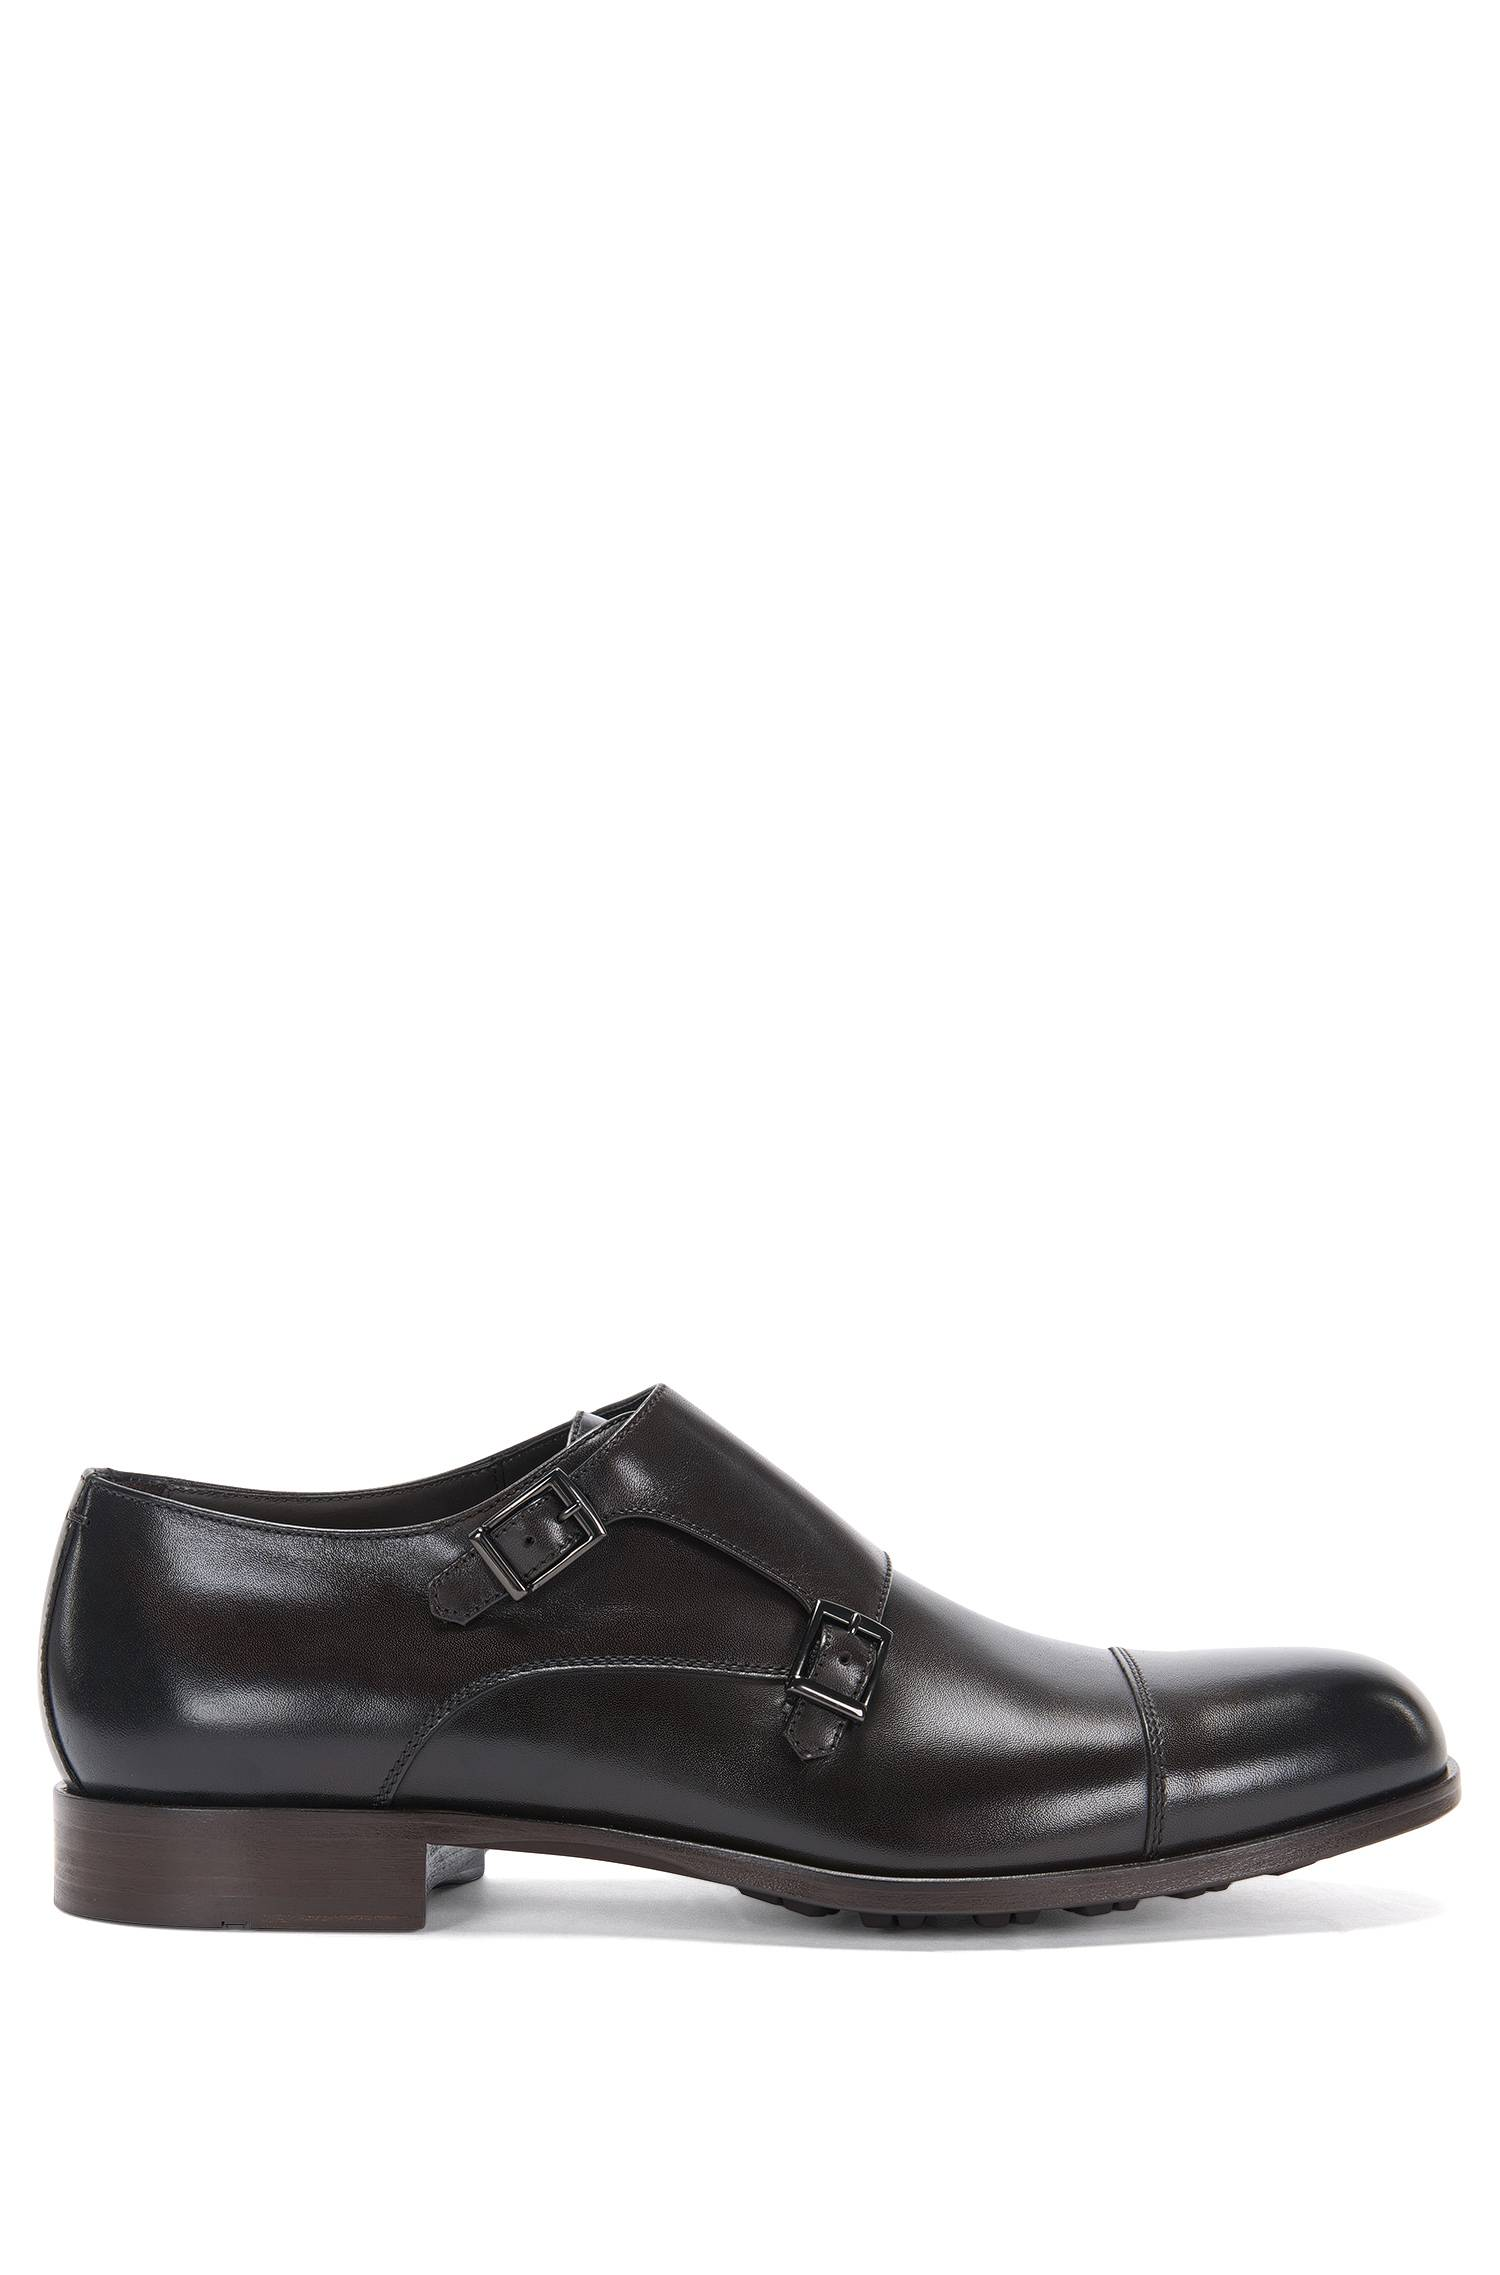 Leather double monk shoes with profiled outer sole `Monumental_Monk_ct`